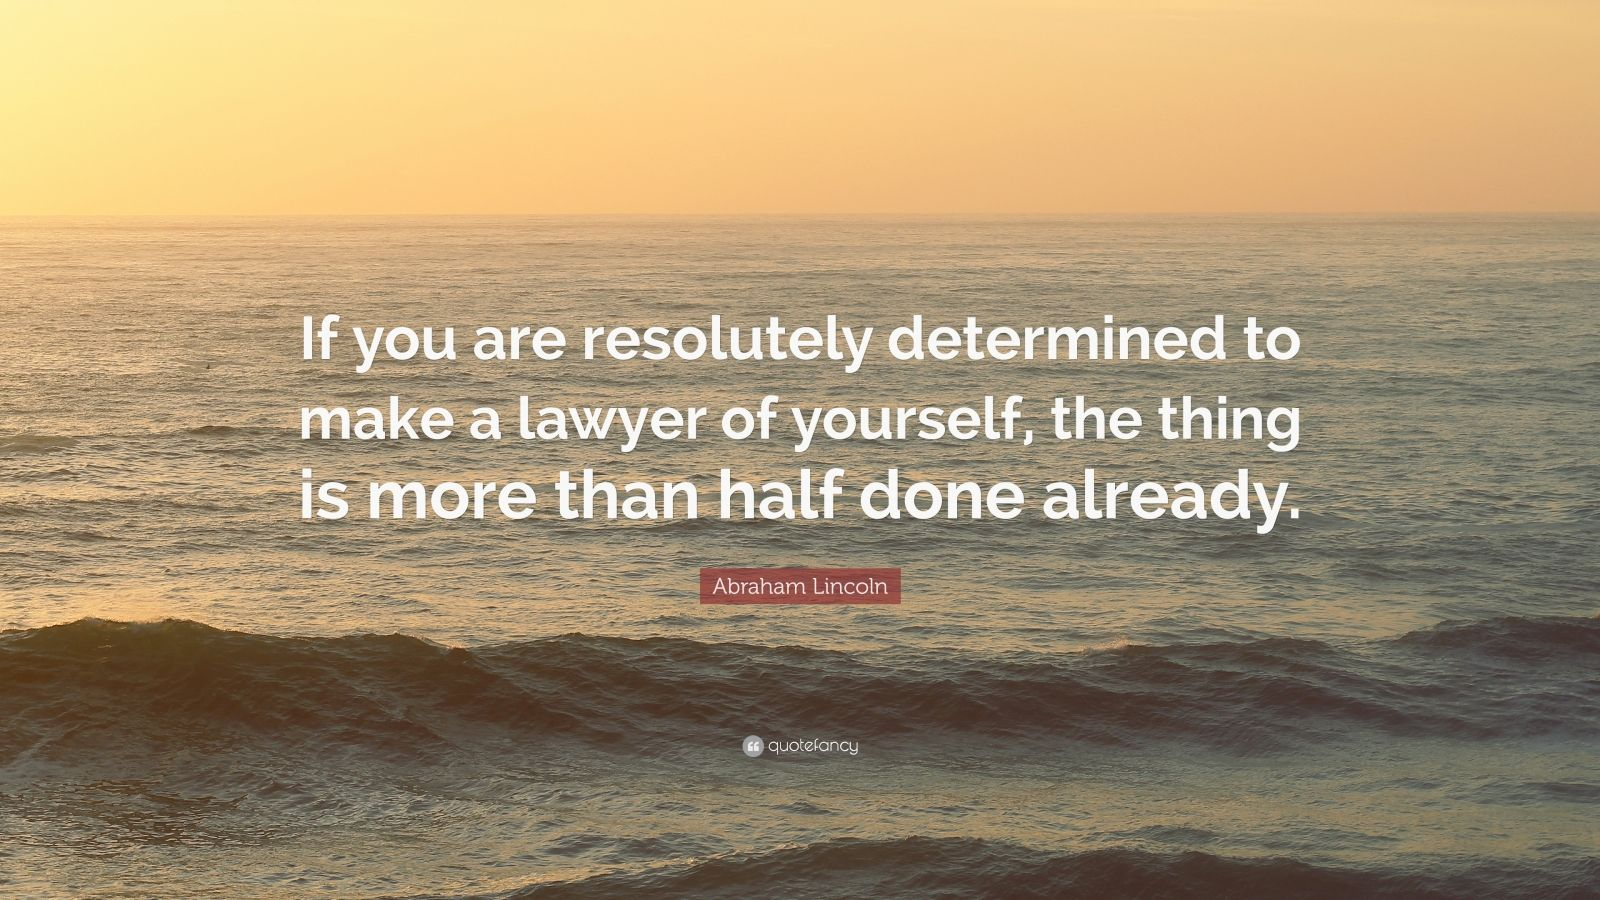 """Abraham Lincoln Quote: """"If you are resolutely determined to make a lawyer of yourself, the thing is more than half done already."""""""